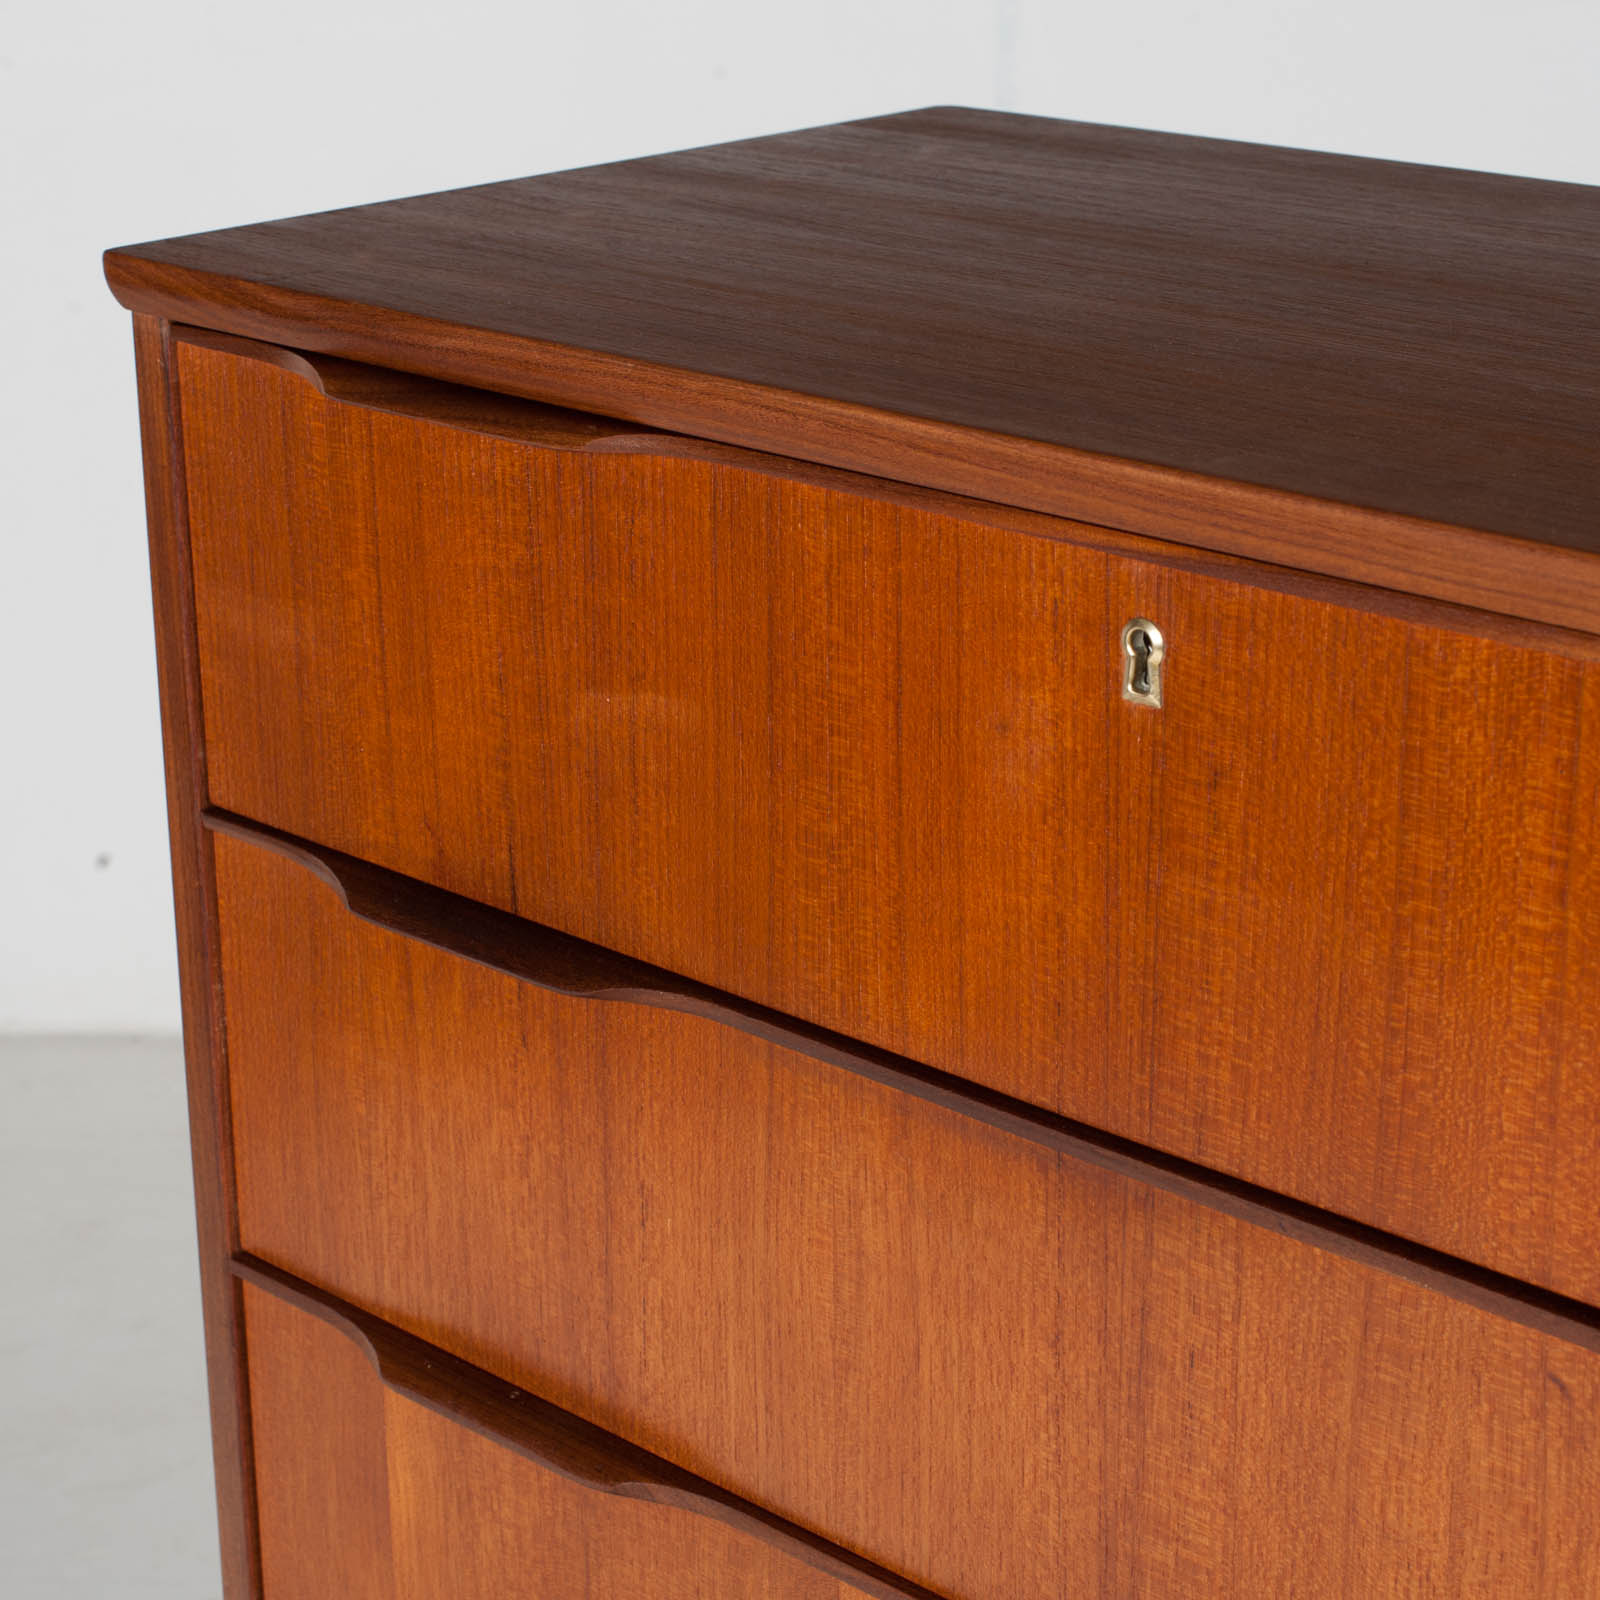 Deep Chest In Teak With Six Drawers And Lipped Handles, 1960s, Denmark7